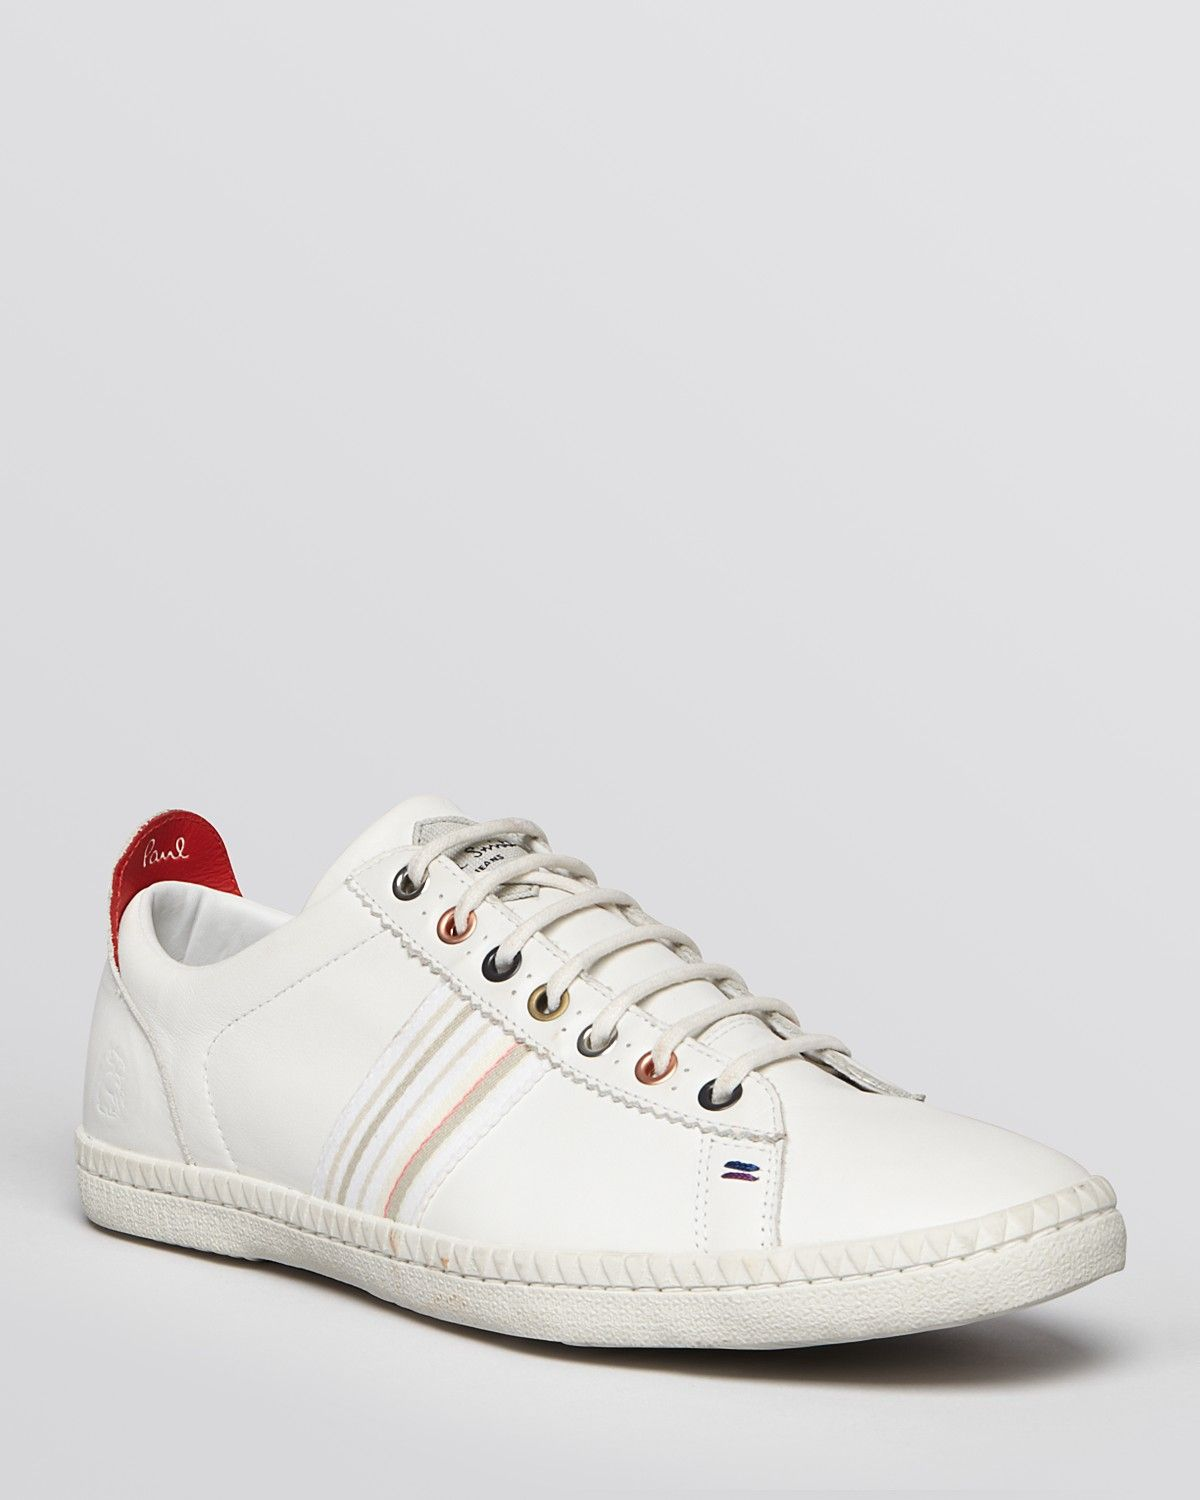 dcc051b5 Paul Smith Osmo Leather Sneakers | Bloomingdale's | Clothes & What ...